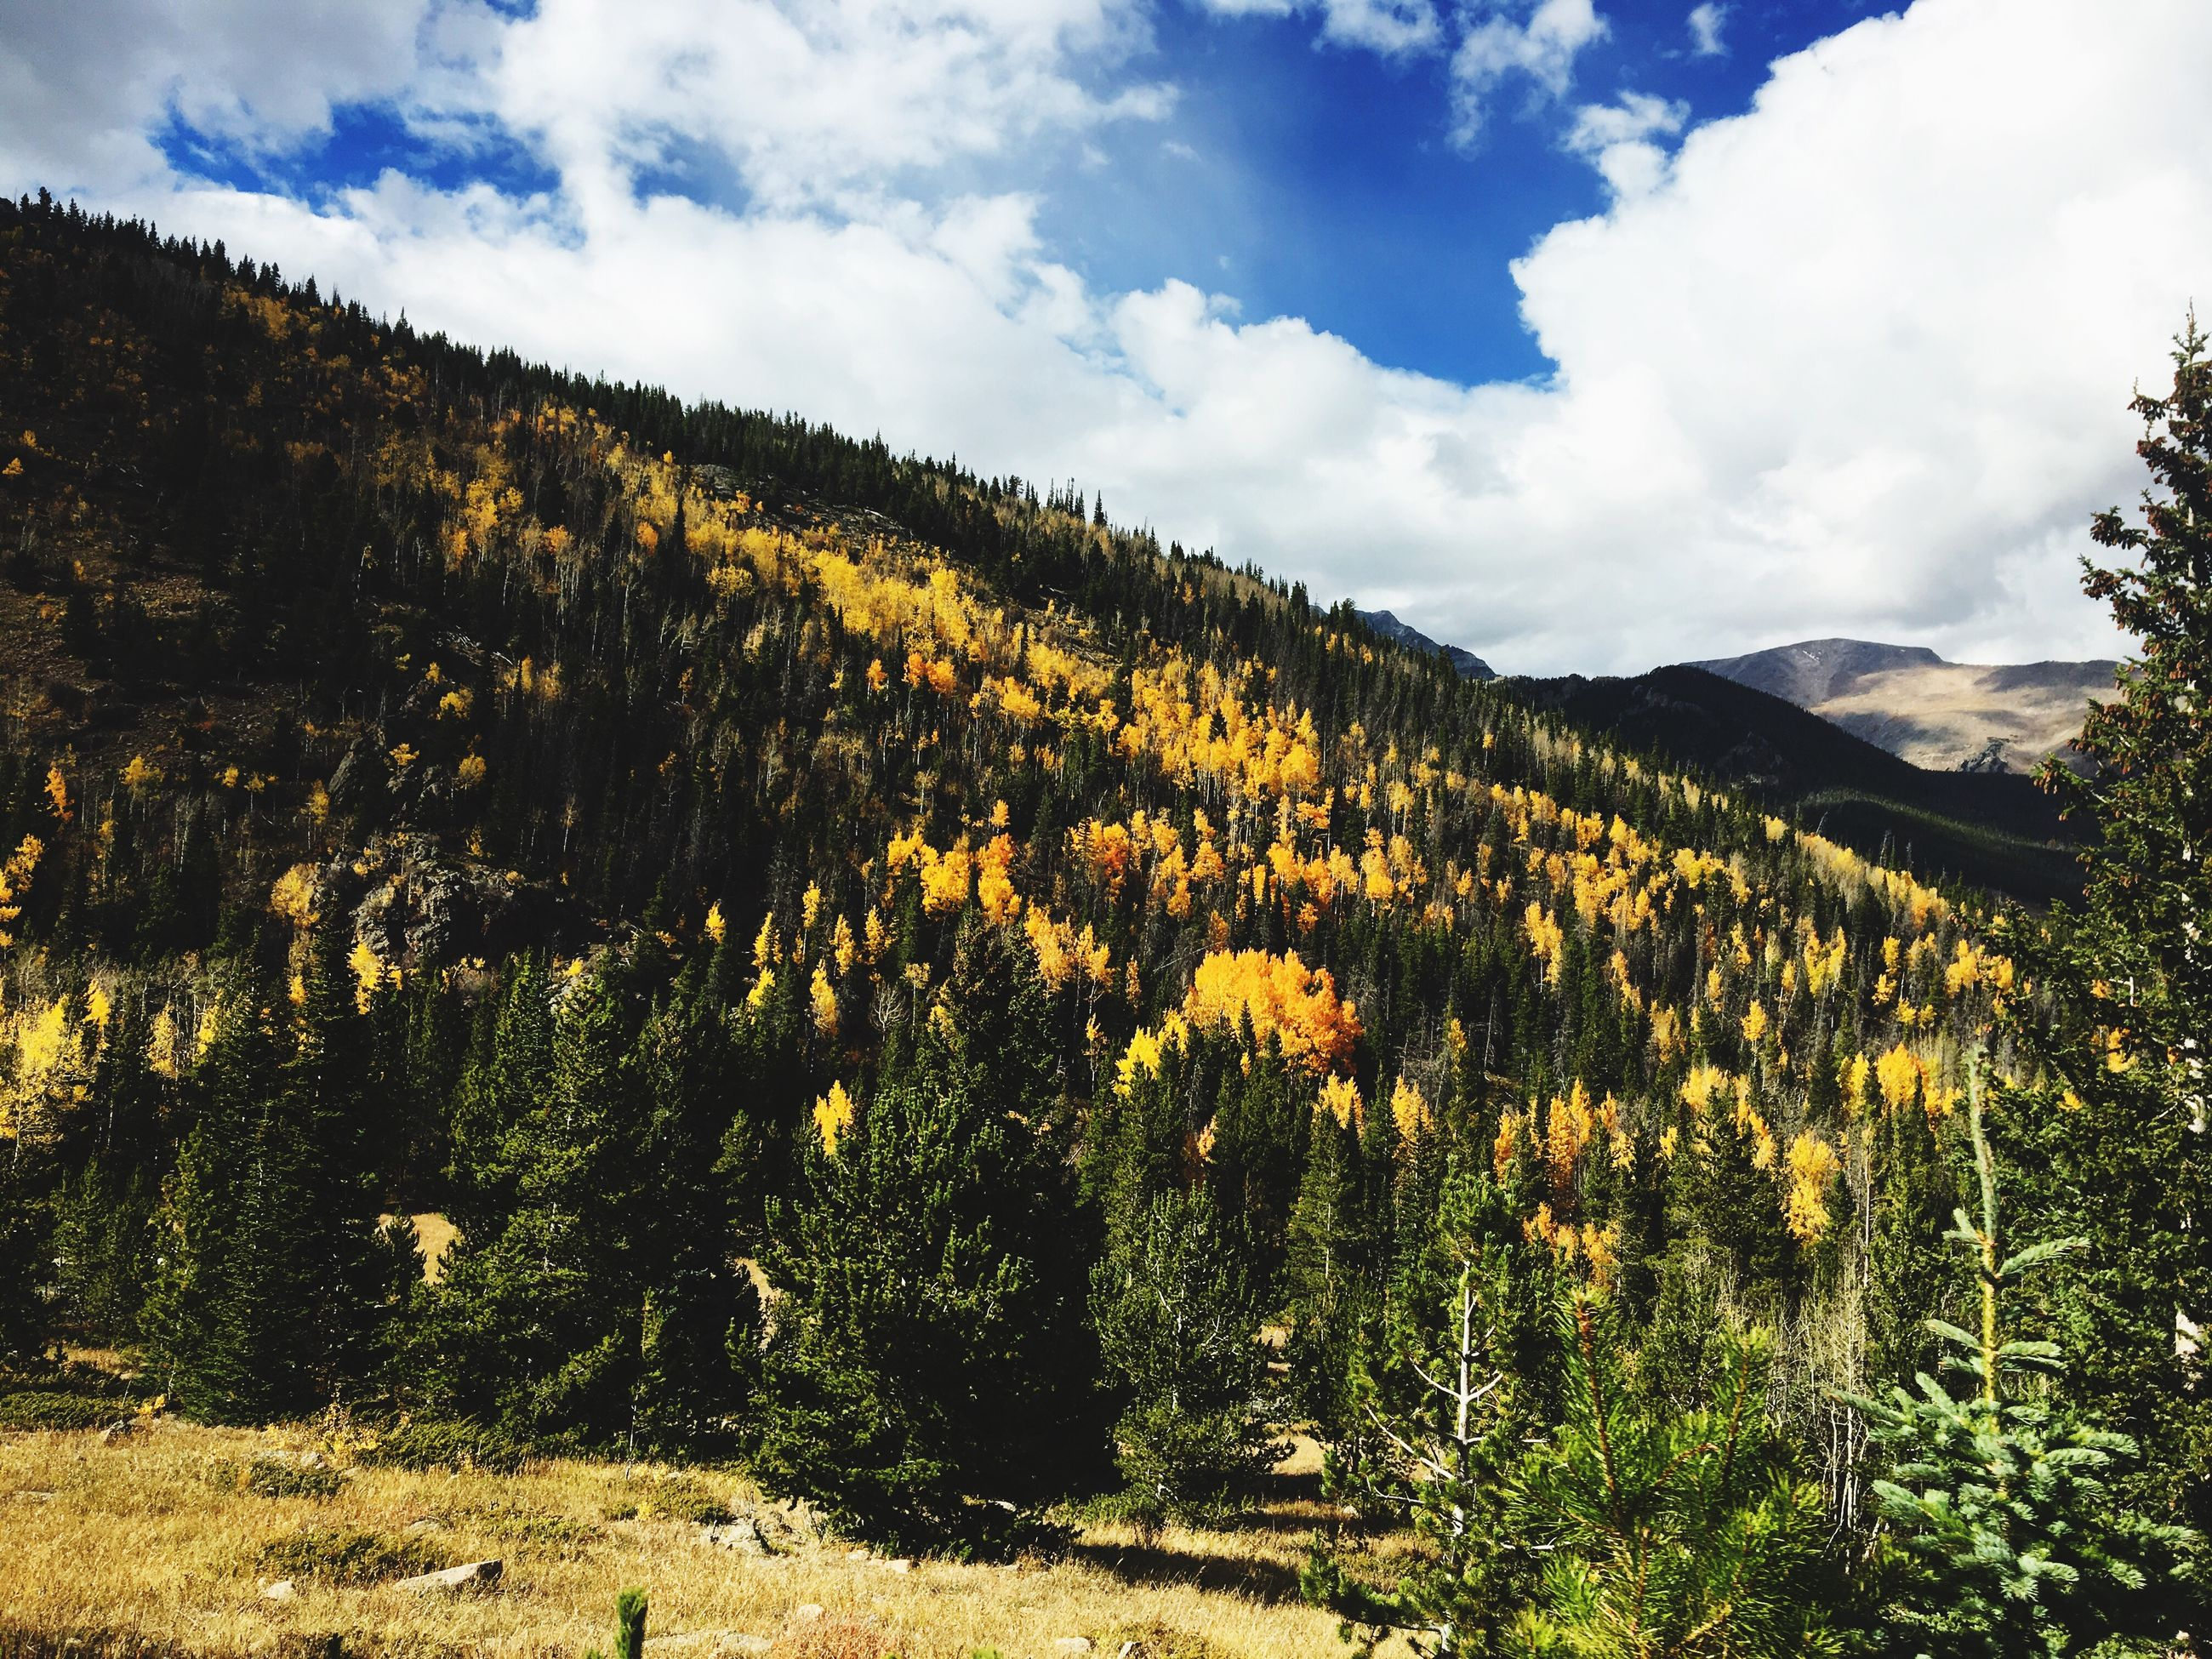 tranquil scene, mountain, growth, tree, sky, scenics, tranquility, beauty in nature, nature, yellow, cloud - sky, mountain range, abundance, day, outdoors, growing, remote, physical geography, majestic, no people, non-urban scene, freshness, fragility, in bloom